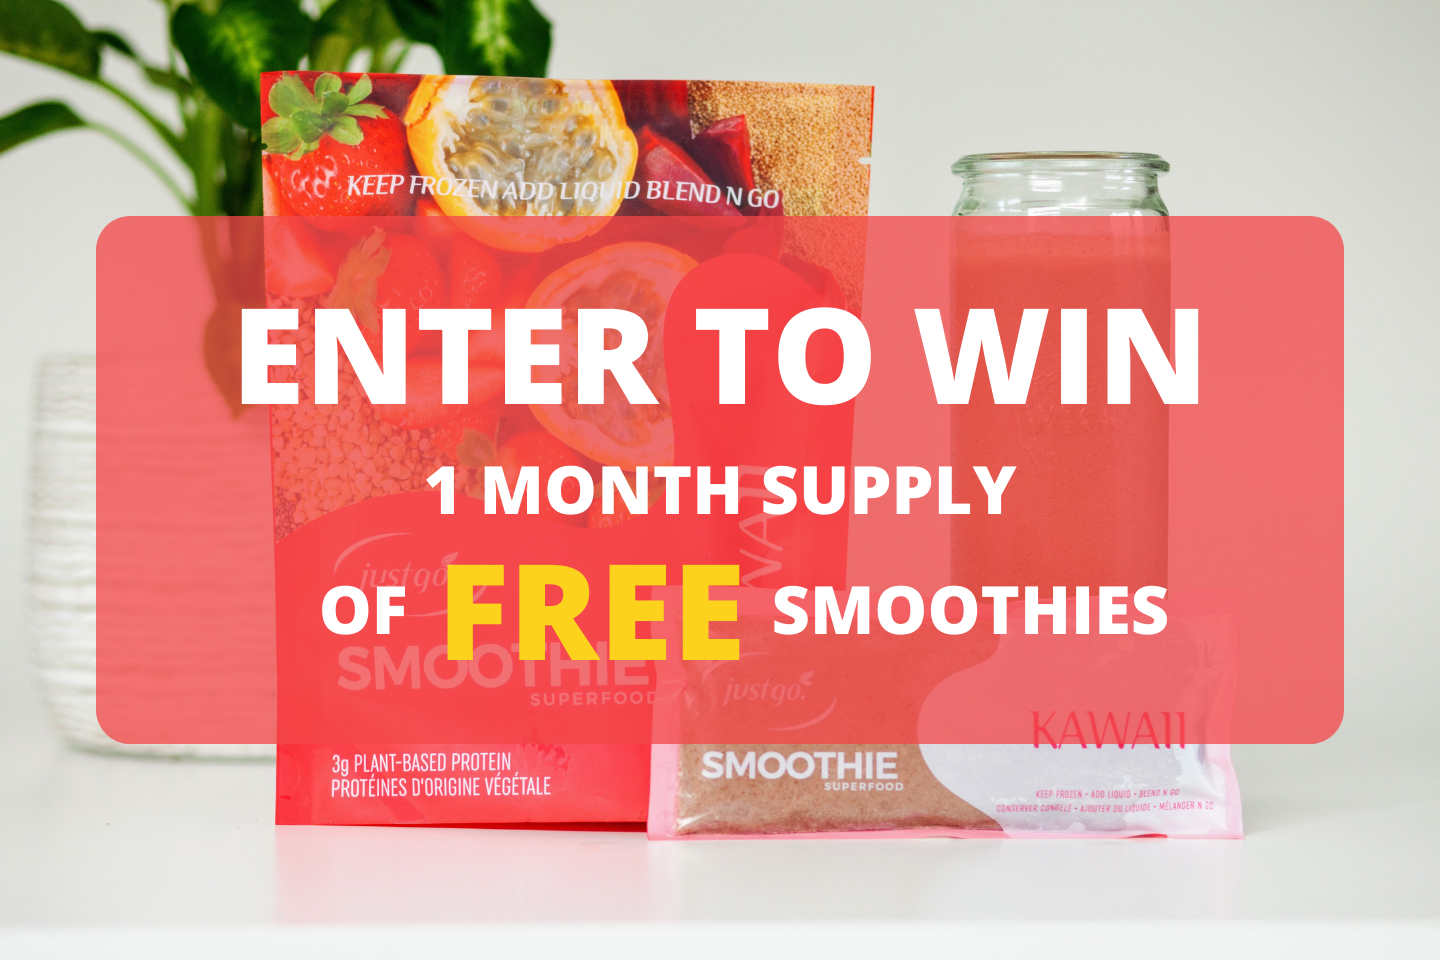 Just Go Smoothie Smoothie Giveaway